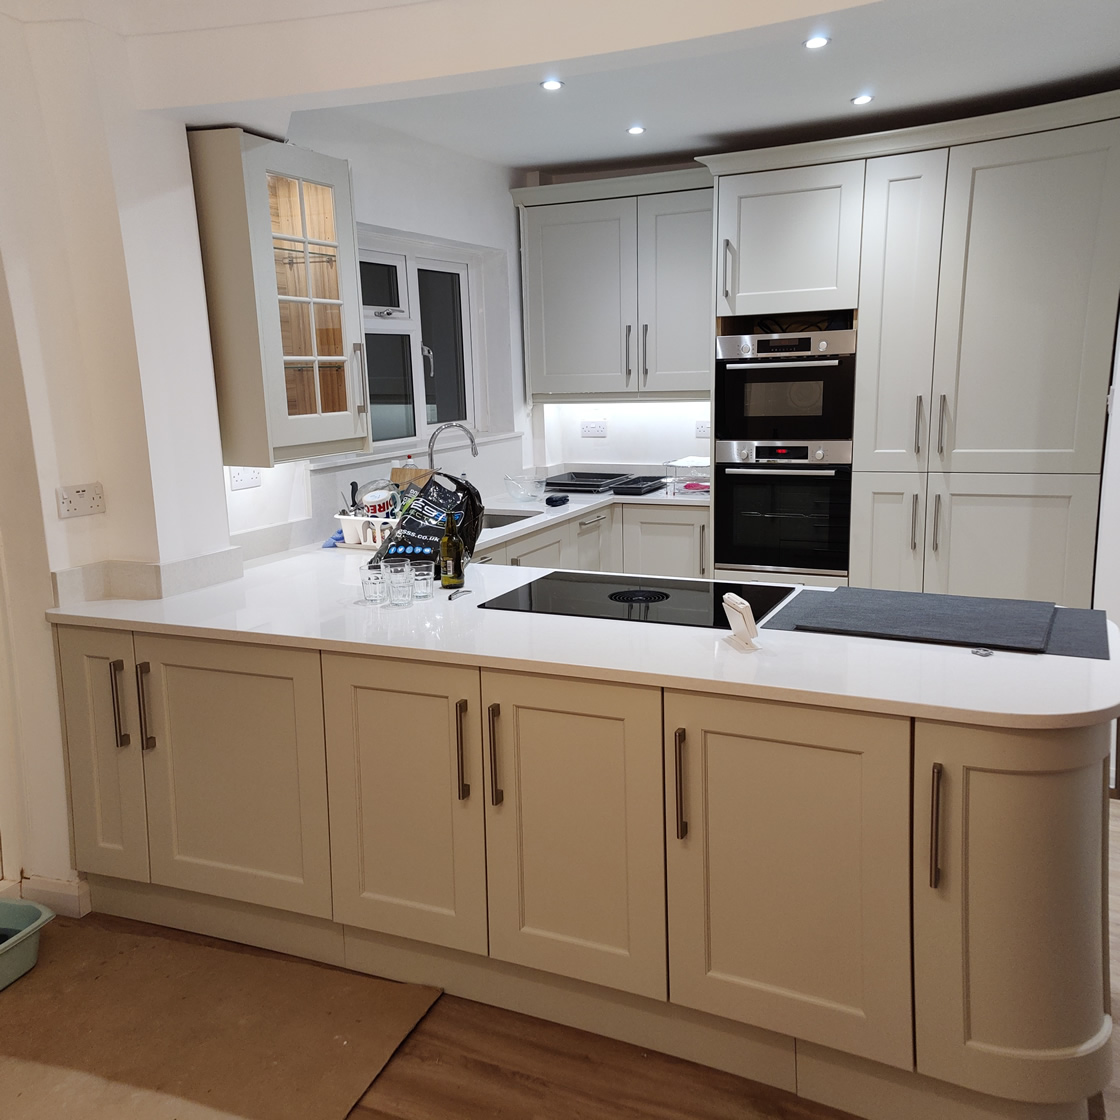 New Shaker Kitchen in Mussel Installed in Dorking Surrey - Punchbowl (8)